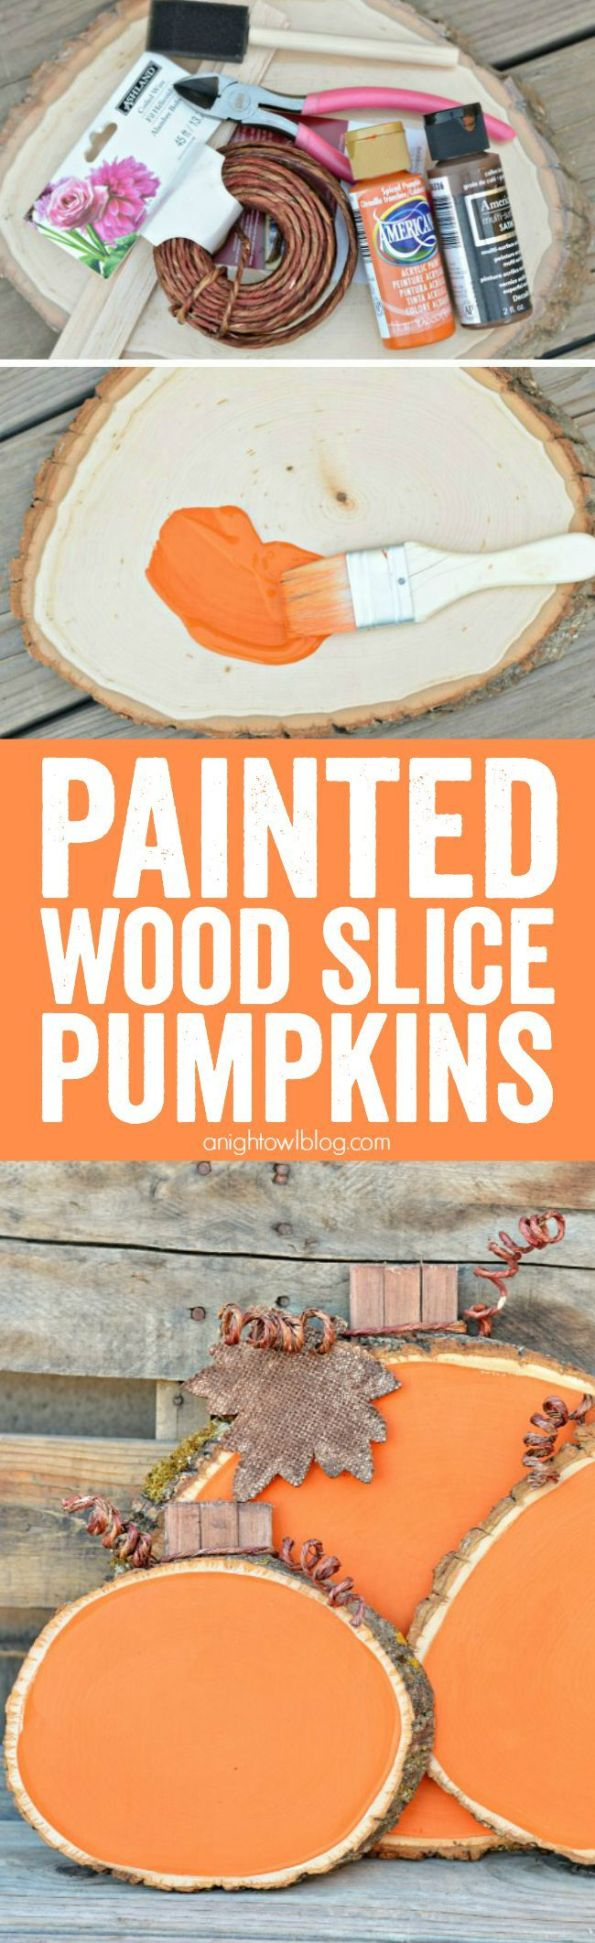 Add some color and whimsy to your Fall Decor with these easy and adorable Painted Wood Slice Pumpkins. #falldecor #pumpkin: